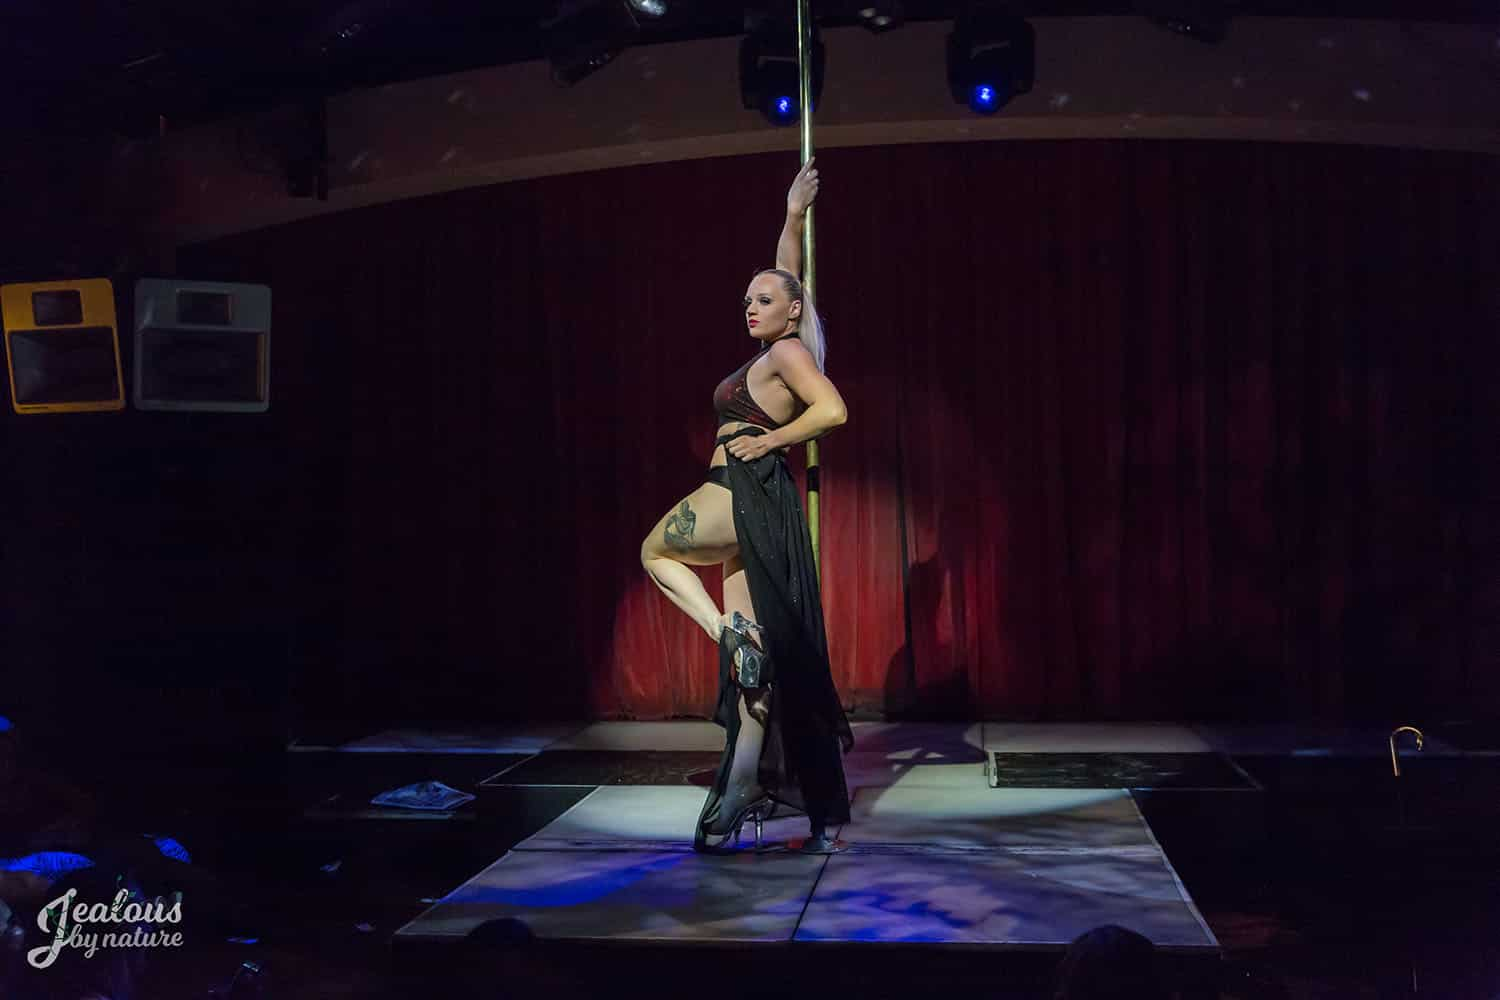 Woman performing in pole competition black flowy skirt high heels, pole fitness, pole dancing